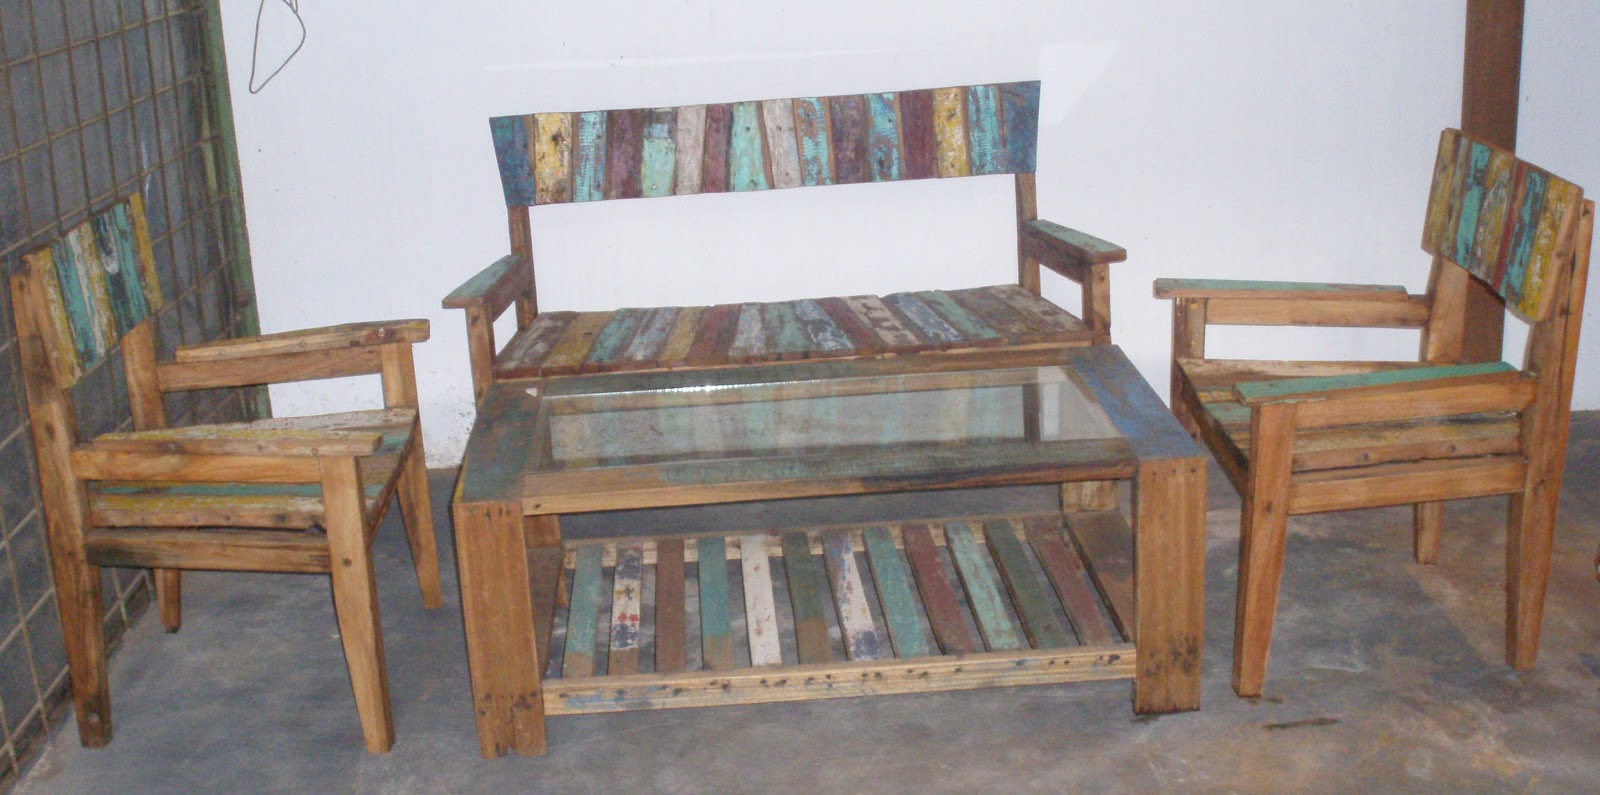 Recycle Furniture Mr Chicken Recycle Furniture Recycle Boat Furniture